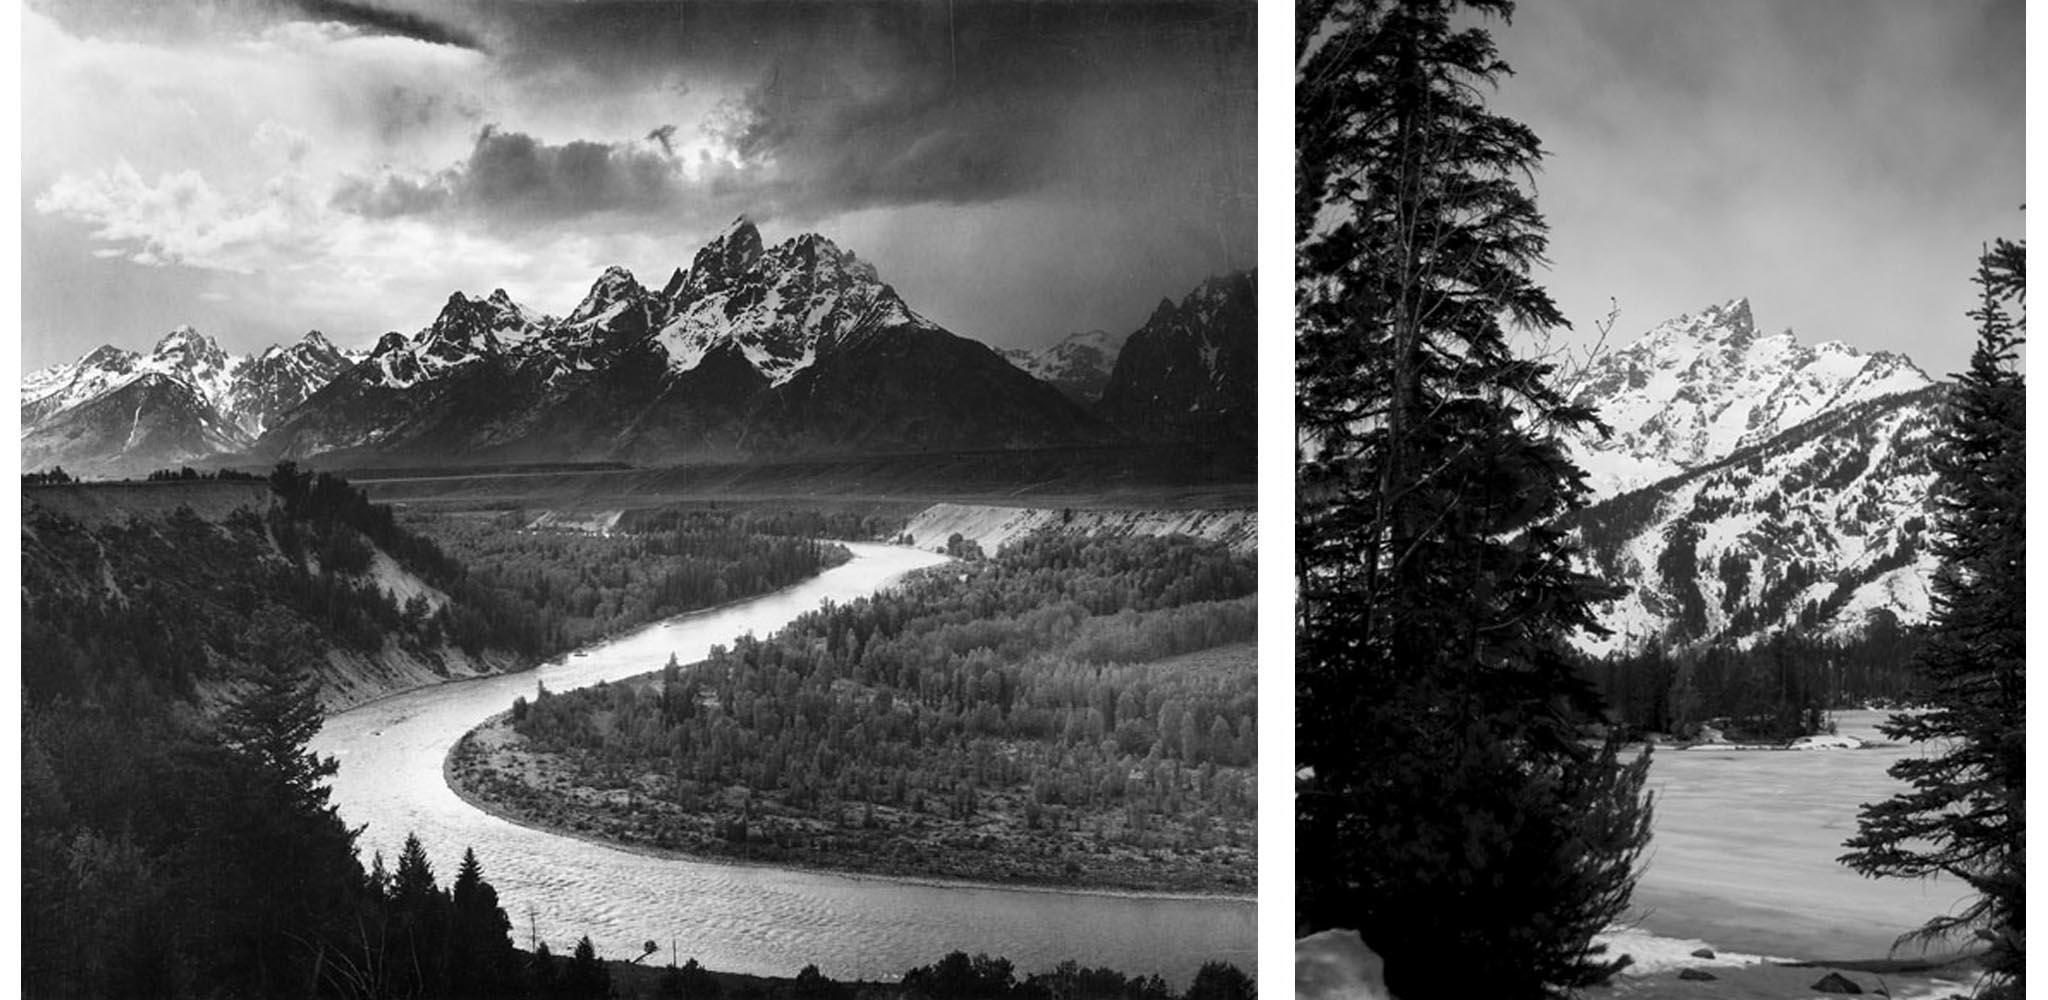 Ansel Adams The Tetons Snake River Wyoming 1942 Jeffrey Evans 2009